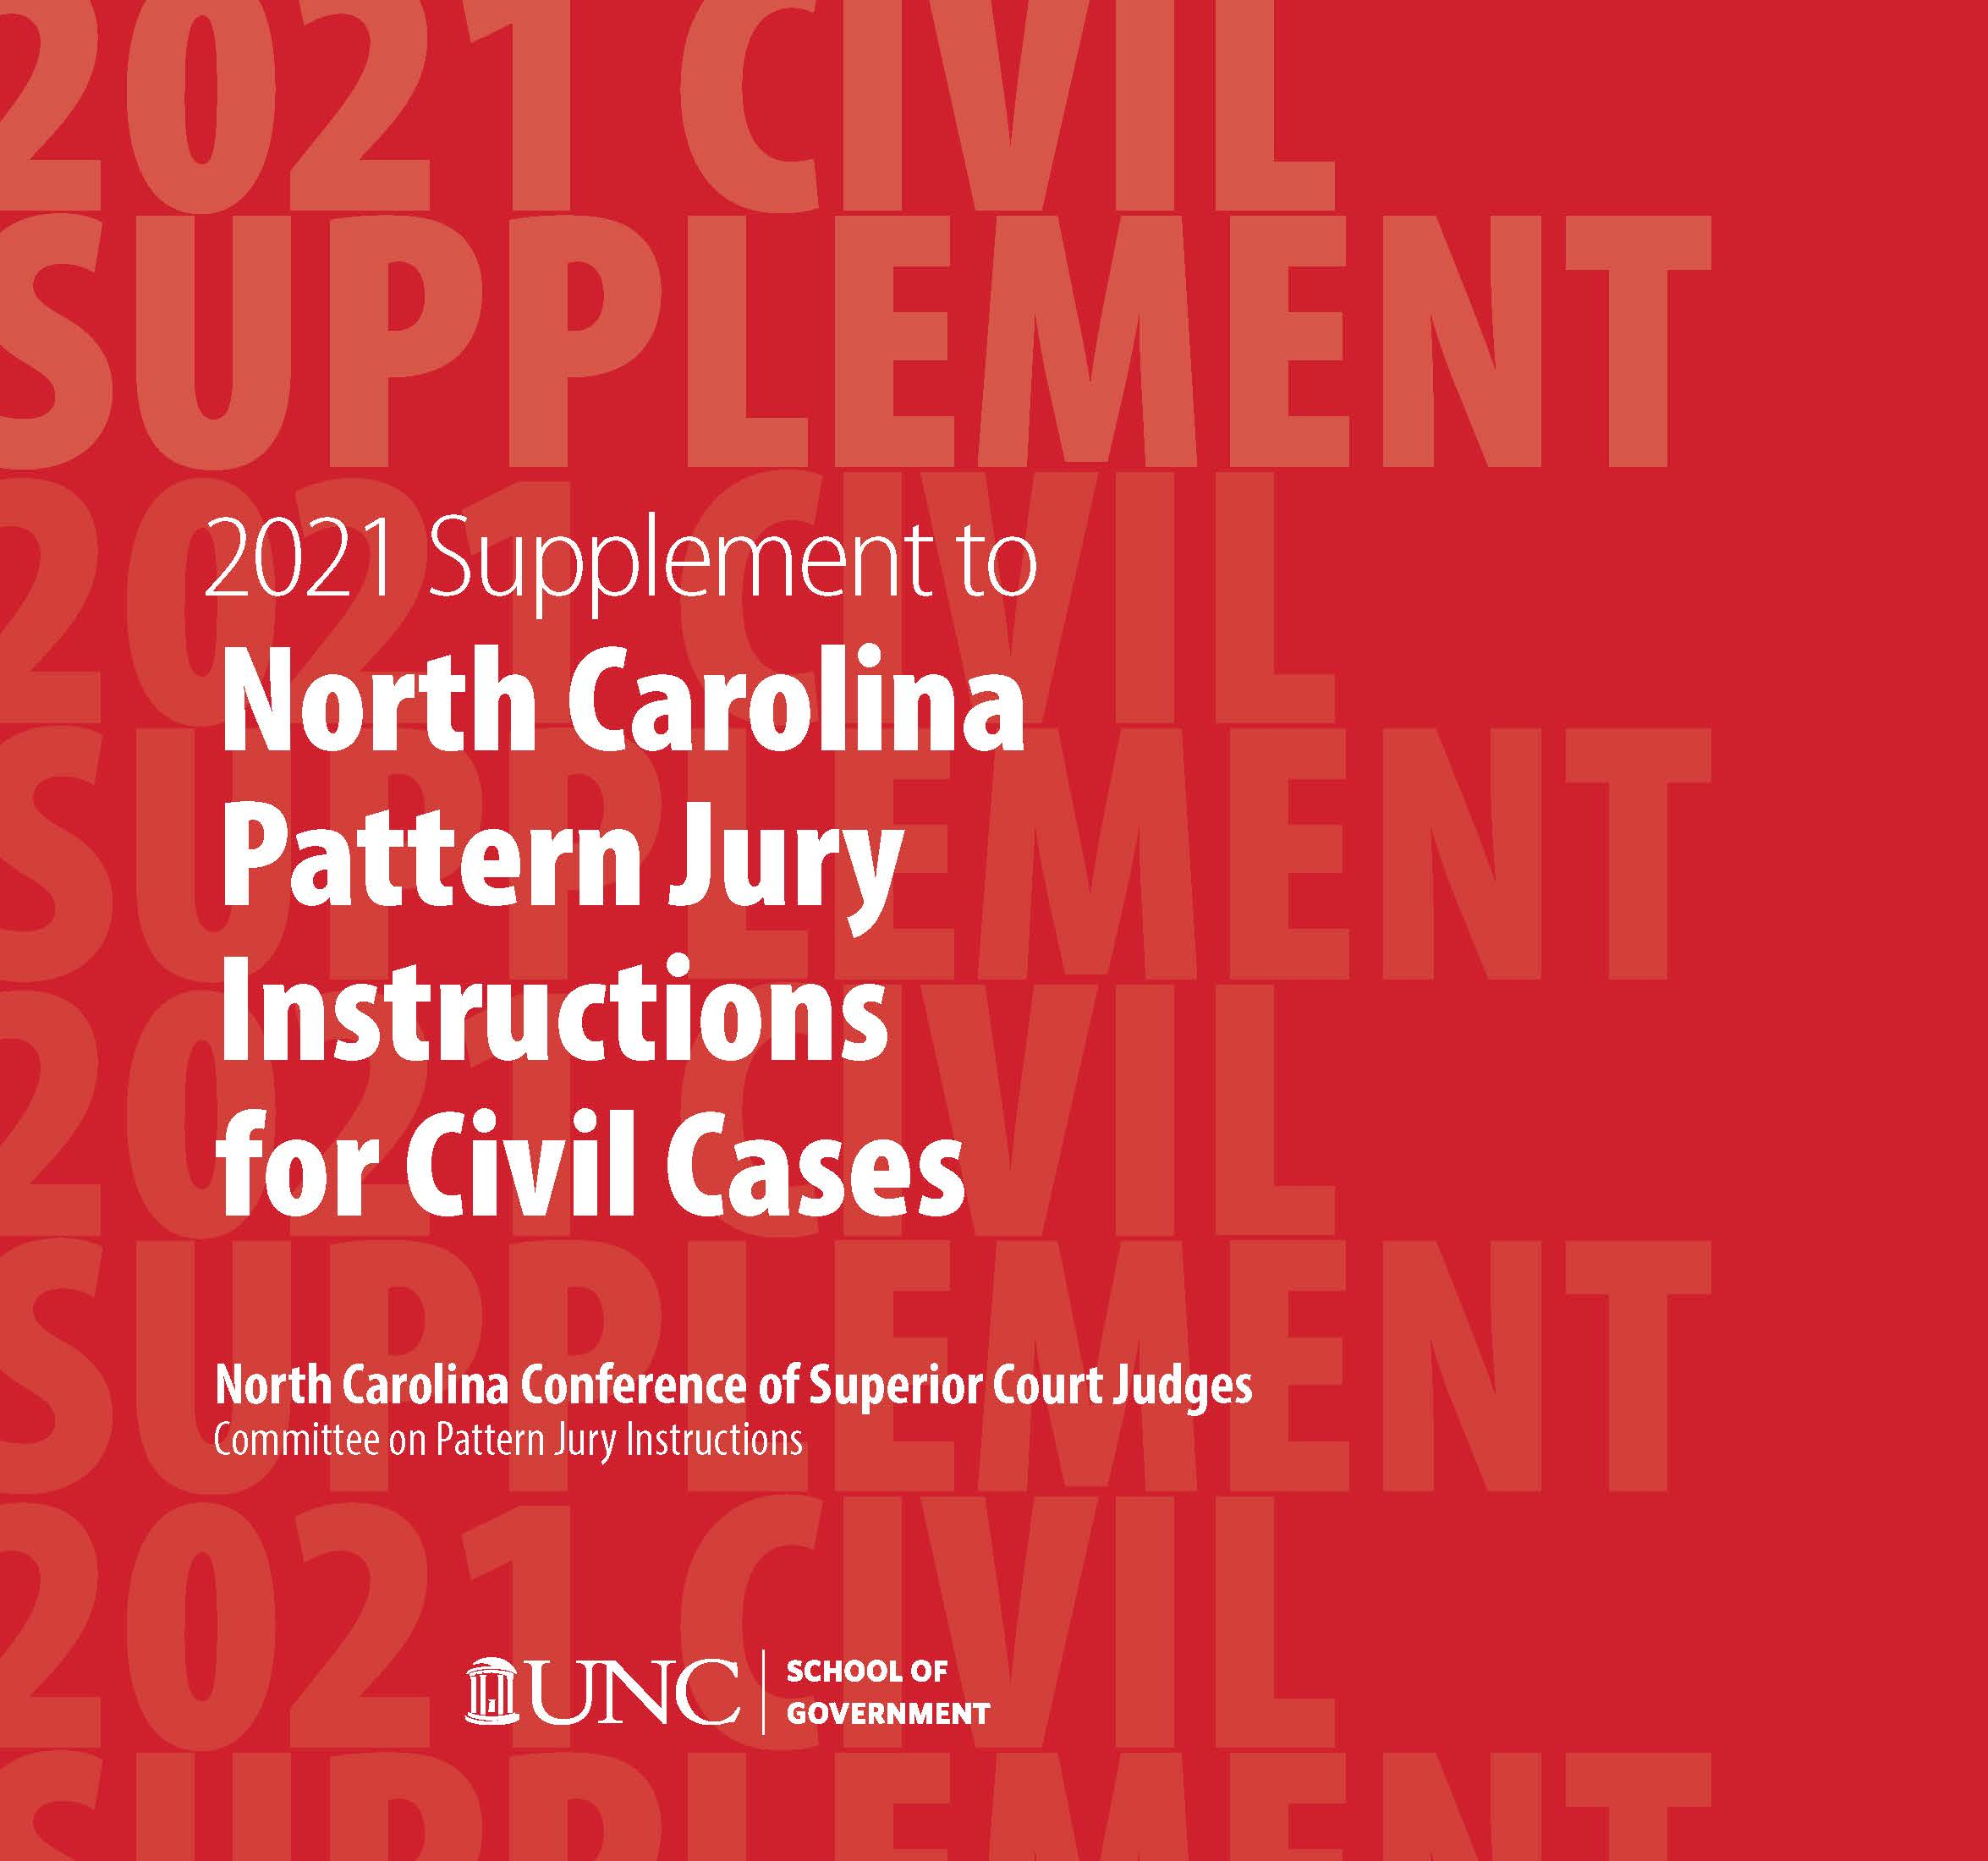 Cover image for 2021 June Supplement to North Carolina Pattern Jury Instructions for Civil Cases